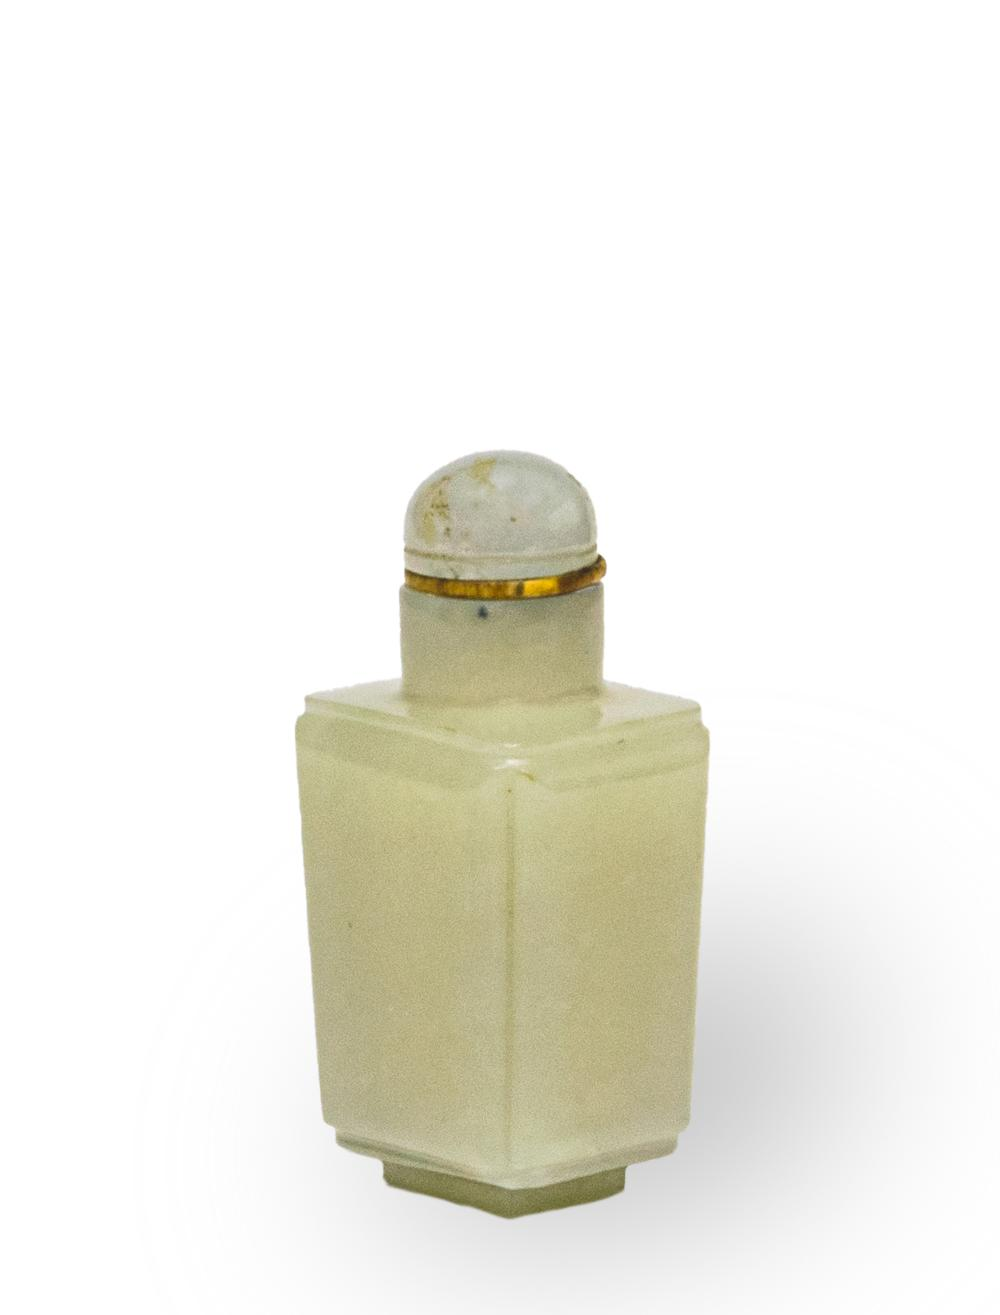 CHINESE WHITE JADE SNUFF BOTTLE, 18-19TH CENTURY